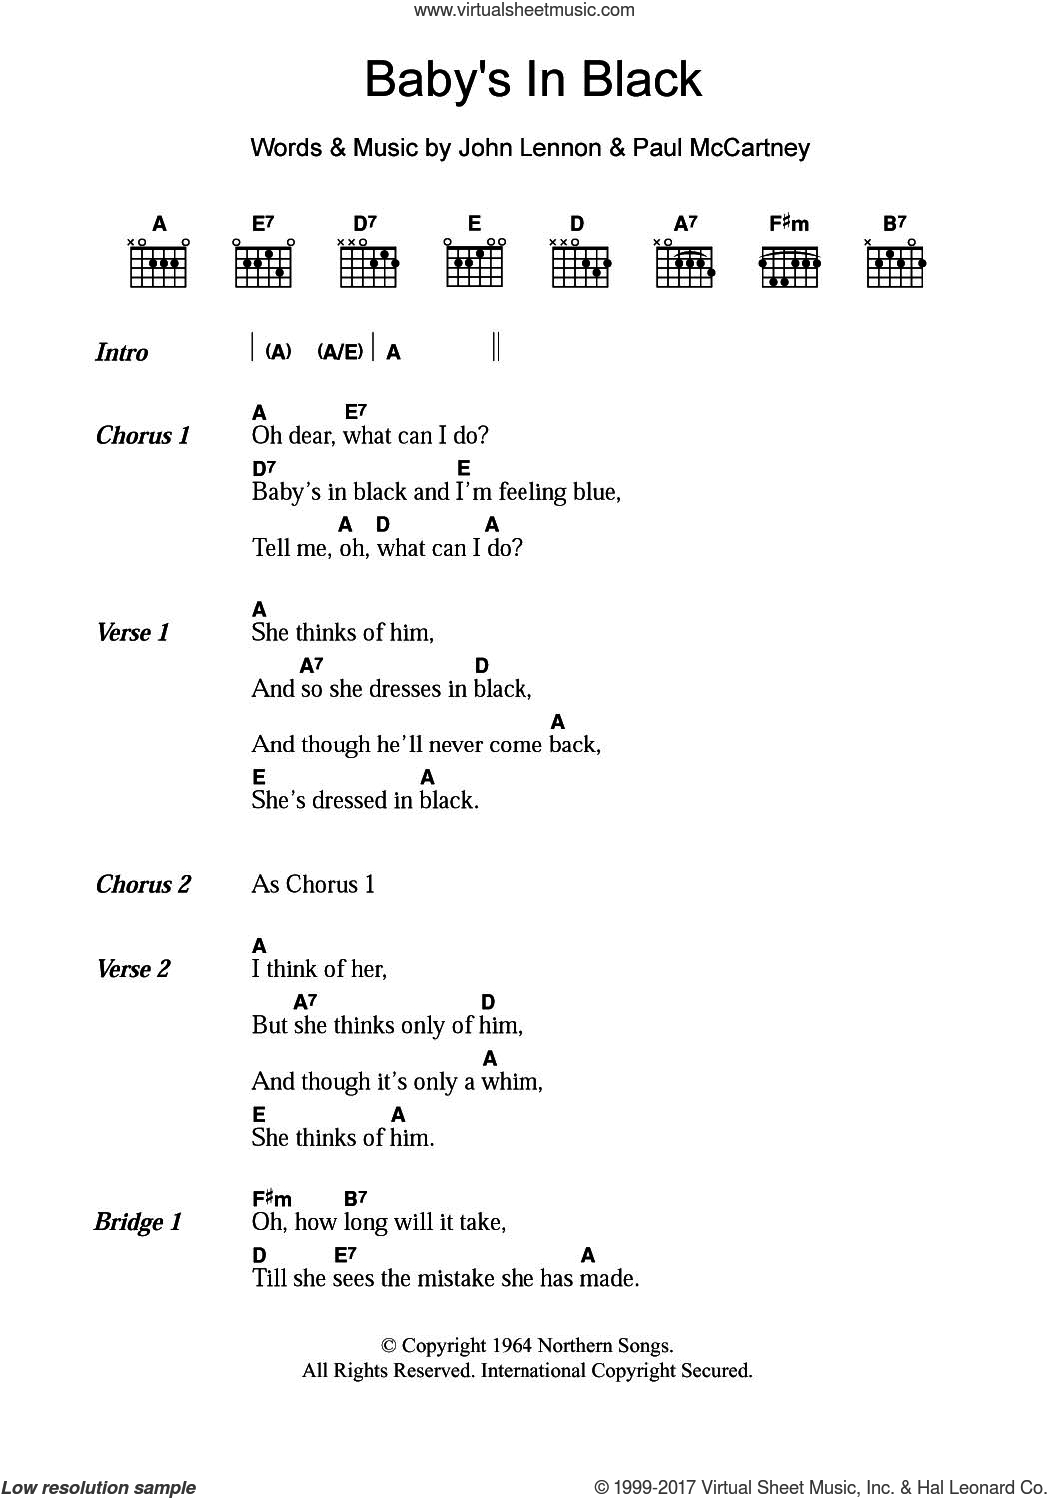 Across The Universe Chords Beatles Bas In Black Sheet Music For Guitar Chords Pdf